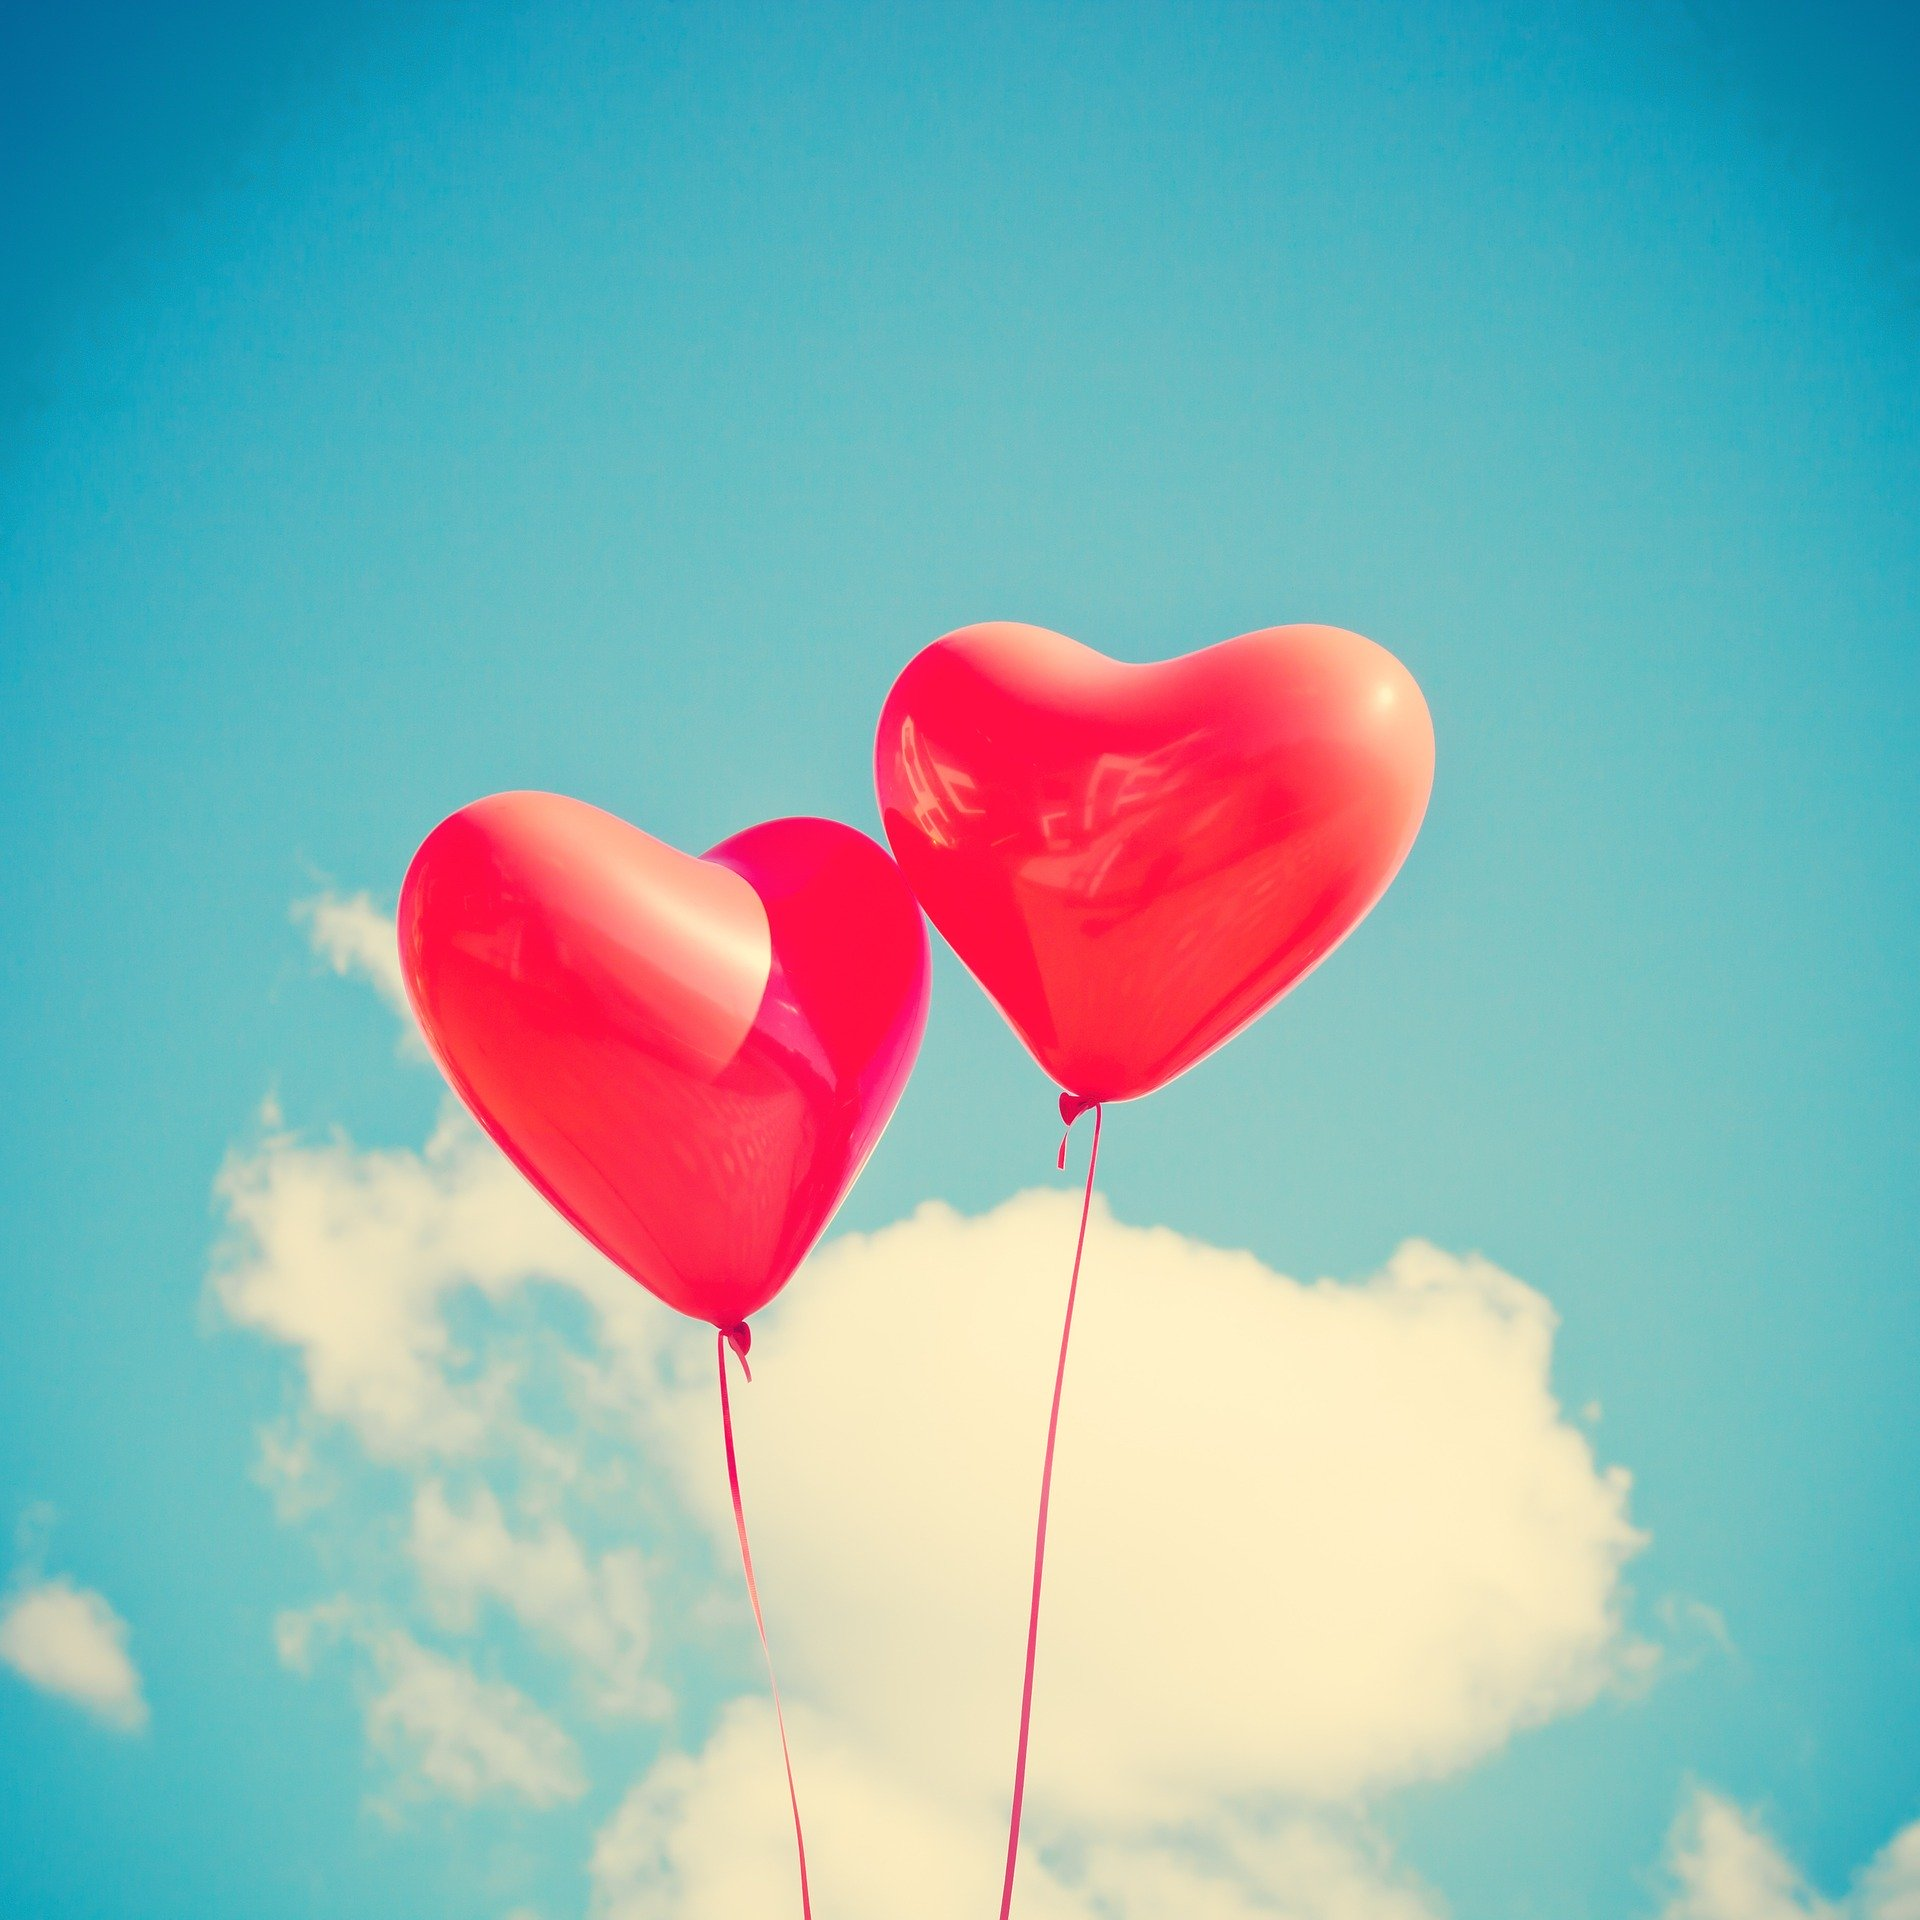 red heart-shaped balloons